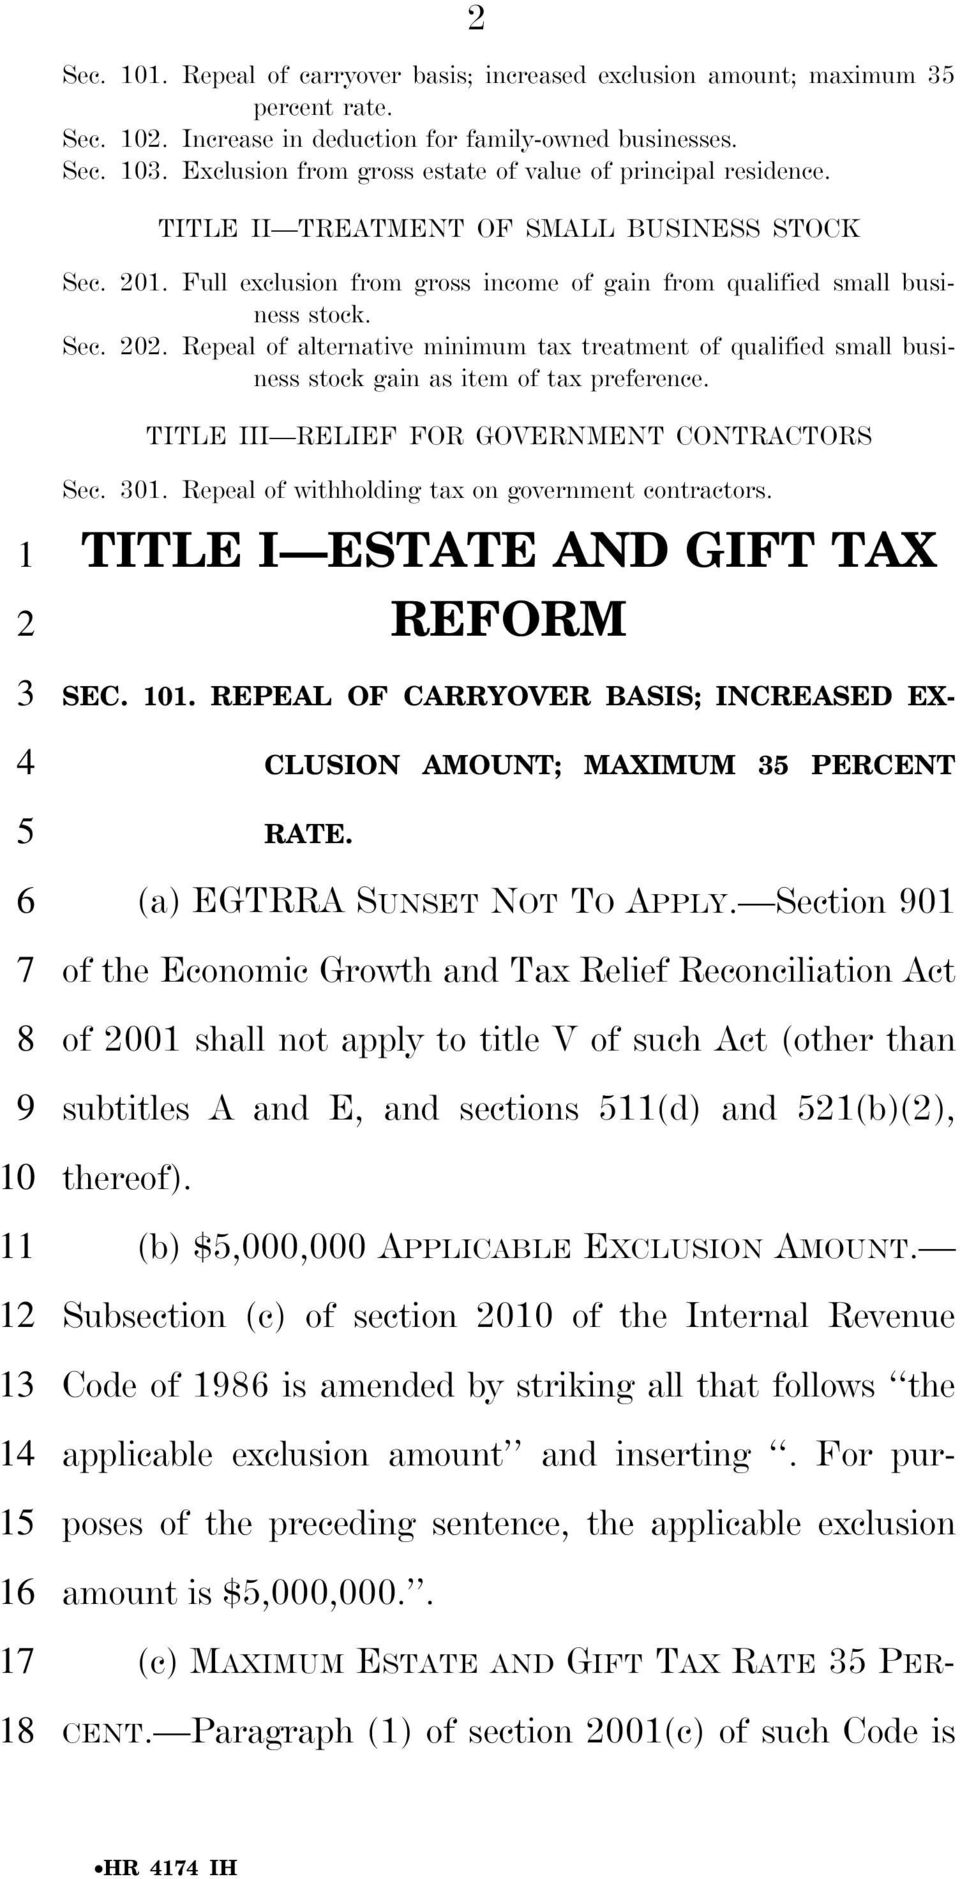 TITLE III RELIEF FOR GOVERNMENT CONTRACTORS 0 Sec. 0. Repeal of withholding tax on government contractors. TITLE I ESTATE AND GIFT TAX REFORM SEC. 0. REPEAL OF CARRYOVER BASIS; INCREASED EX- CLUSION AMOUNT; MAXIMUM PERCENT RATE.